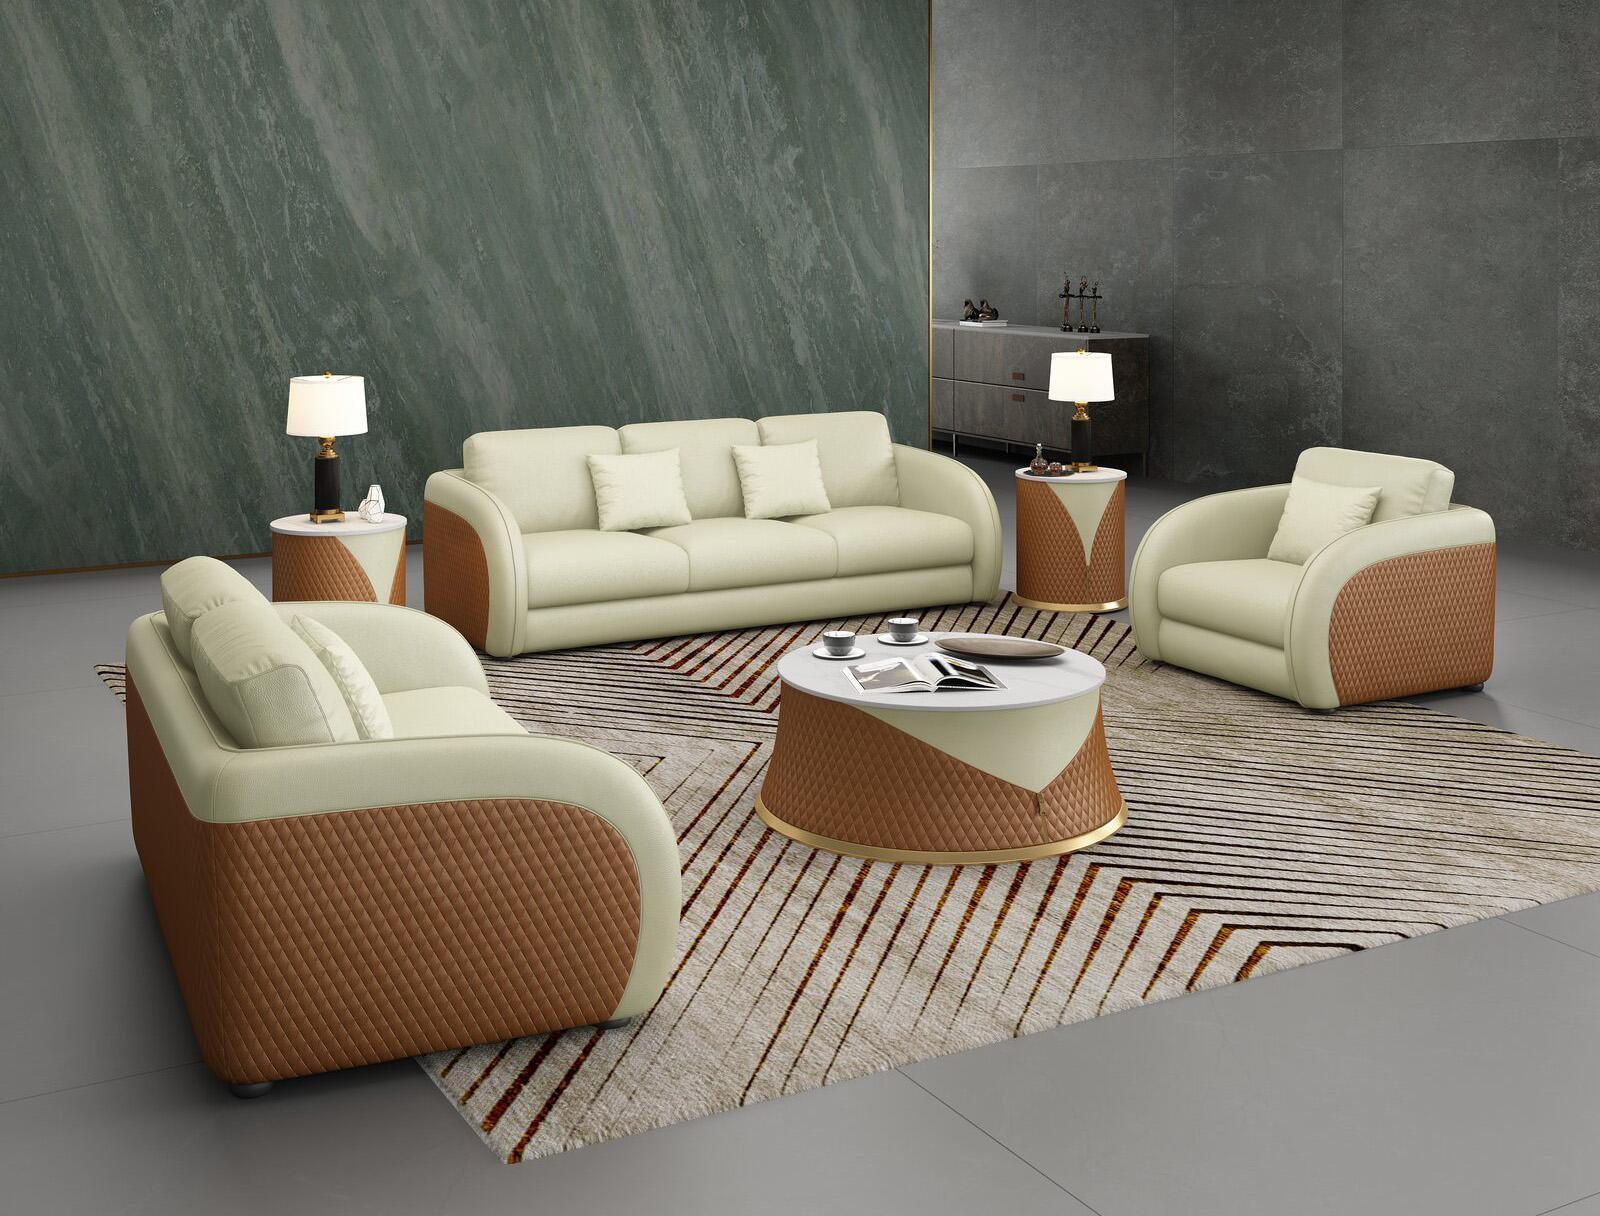 Contemporary, Modern Beige, Cognac Leather and Wood, Genuine leather, Solid Hardwood Sofa Set 3 pcs NOIR  by European Furniture